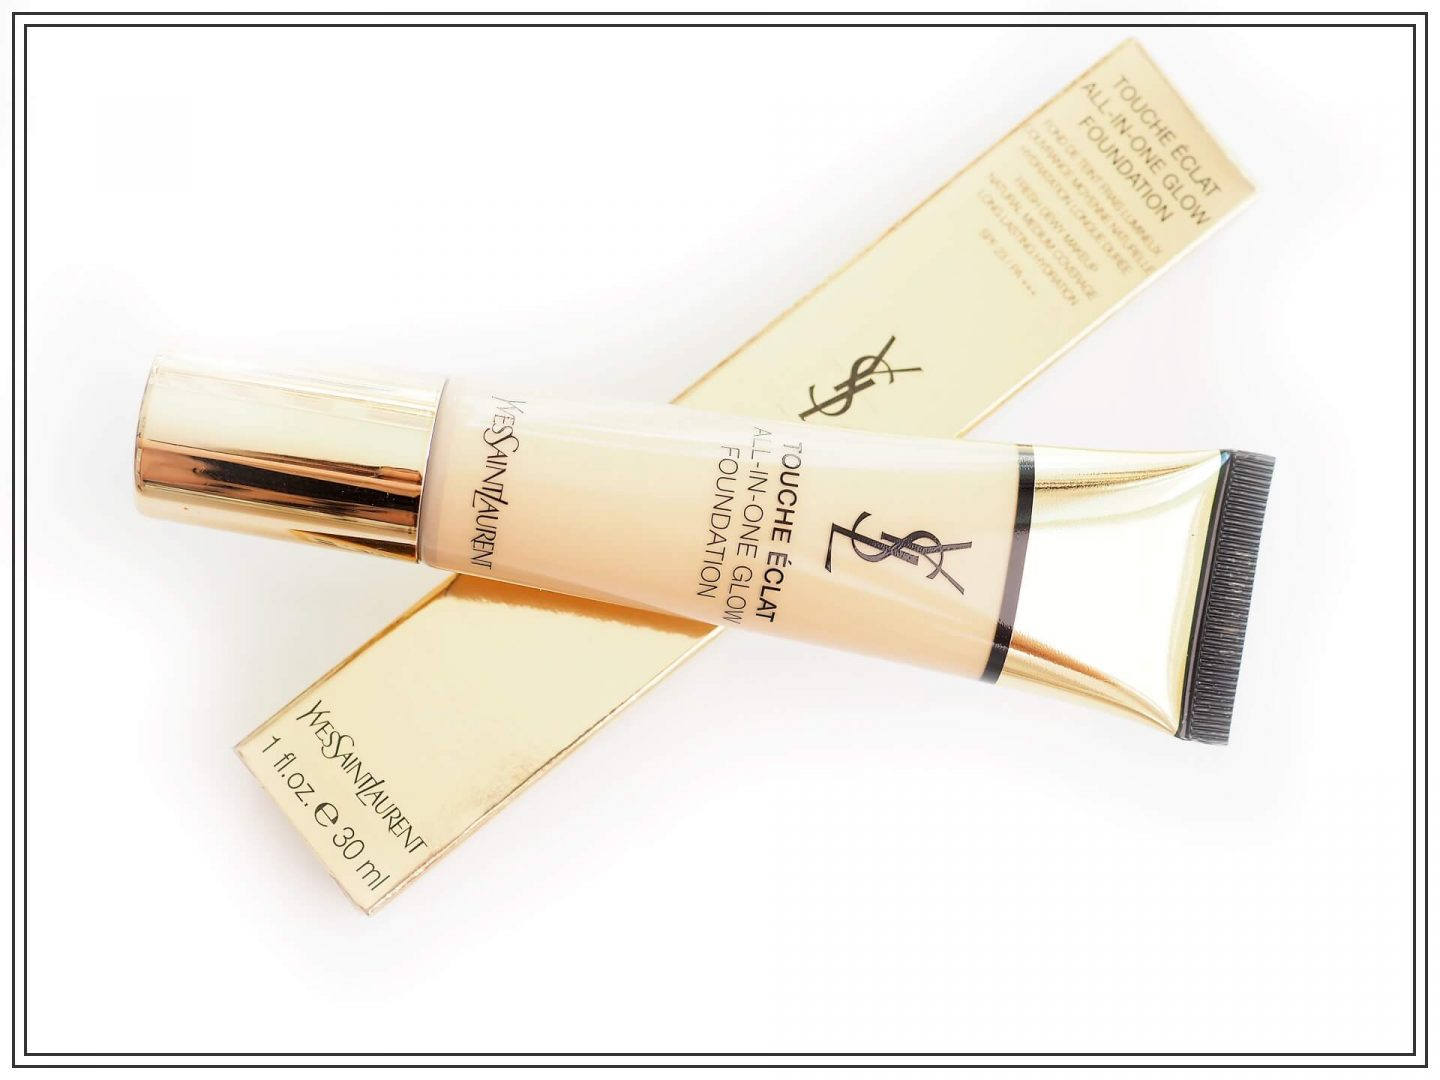 YSL Touche Éclat All-in-One Glow